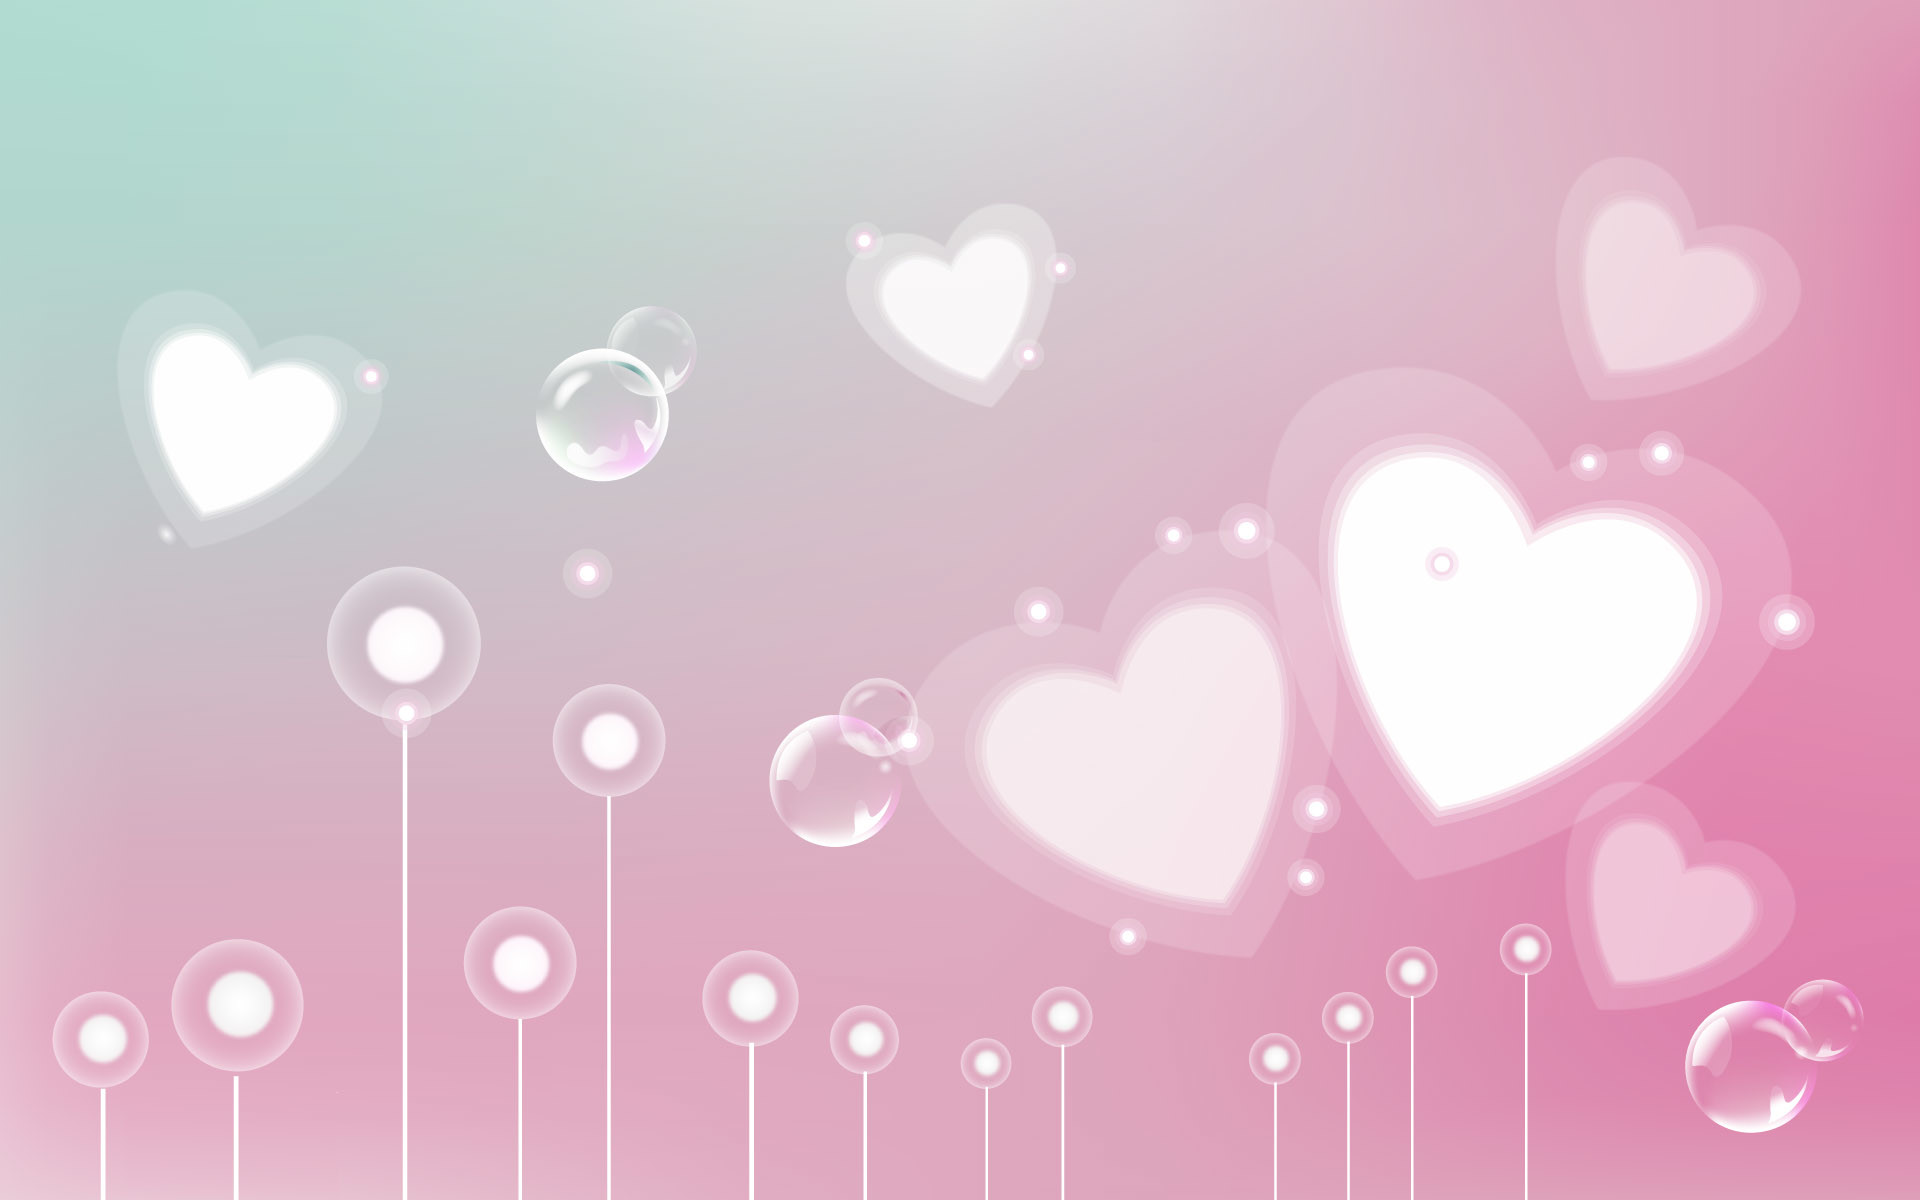 Related Wallpapers from Silver Holidays Background. Valentine Background